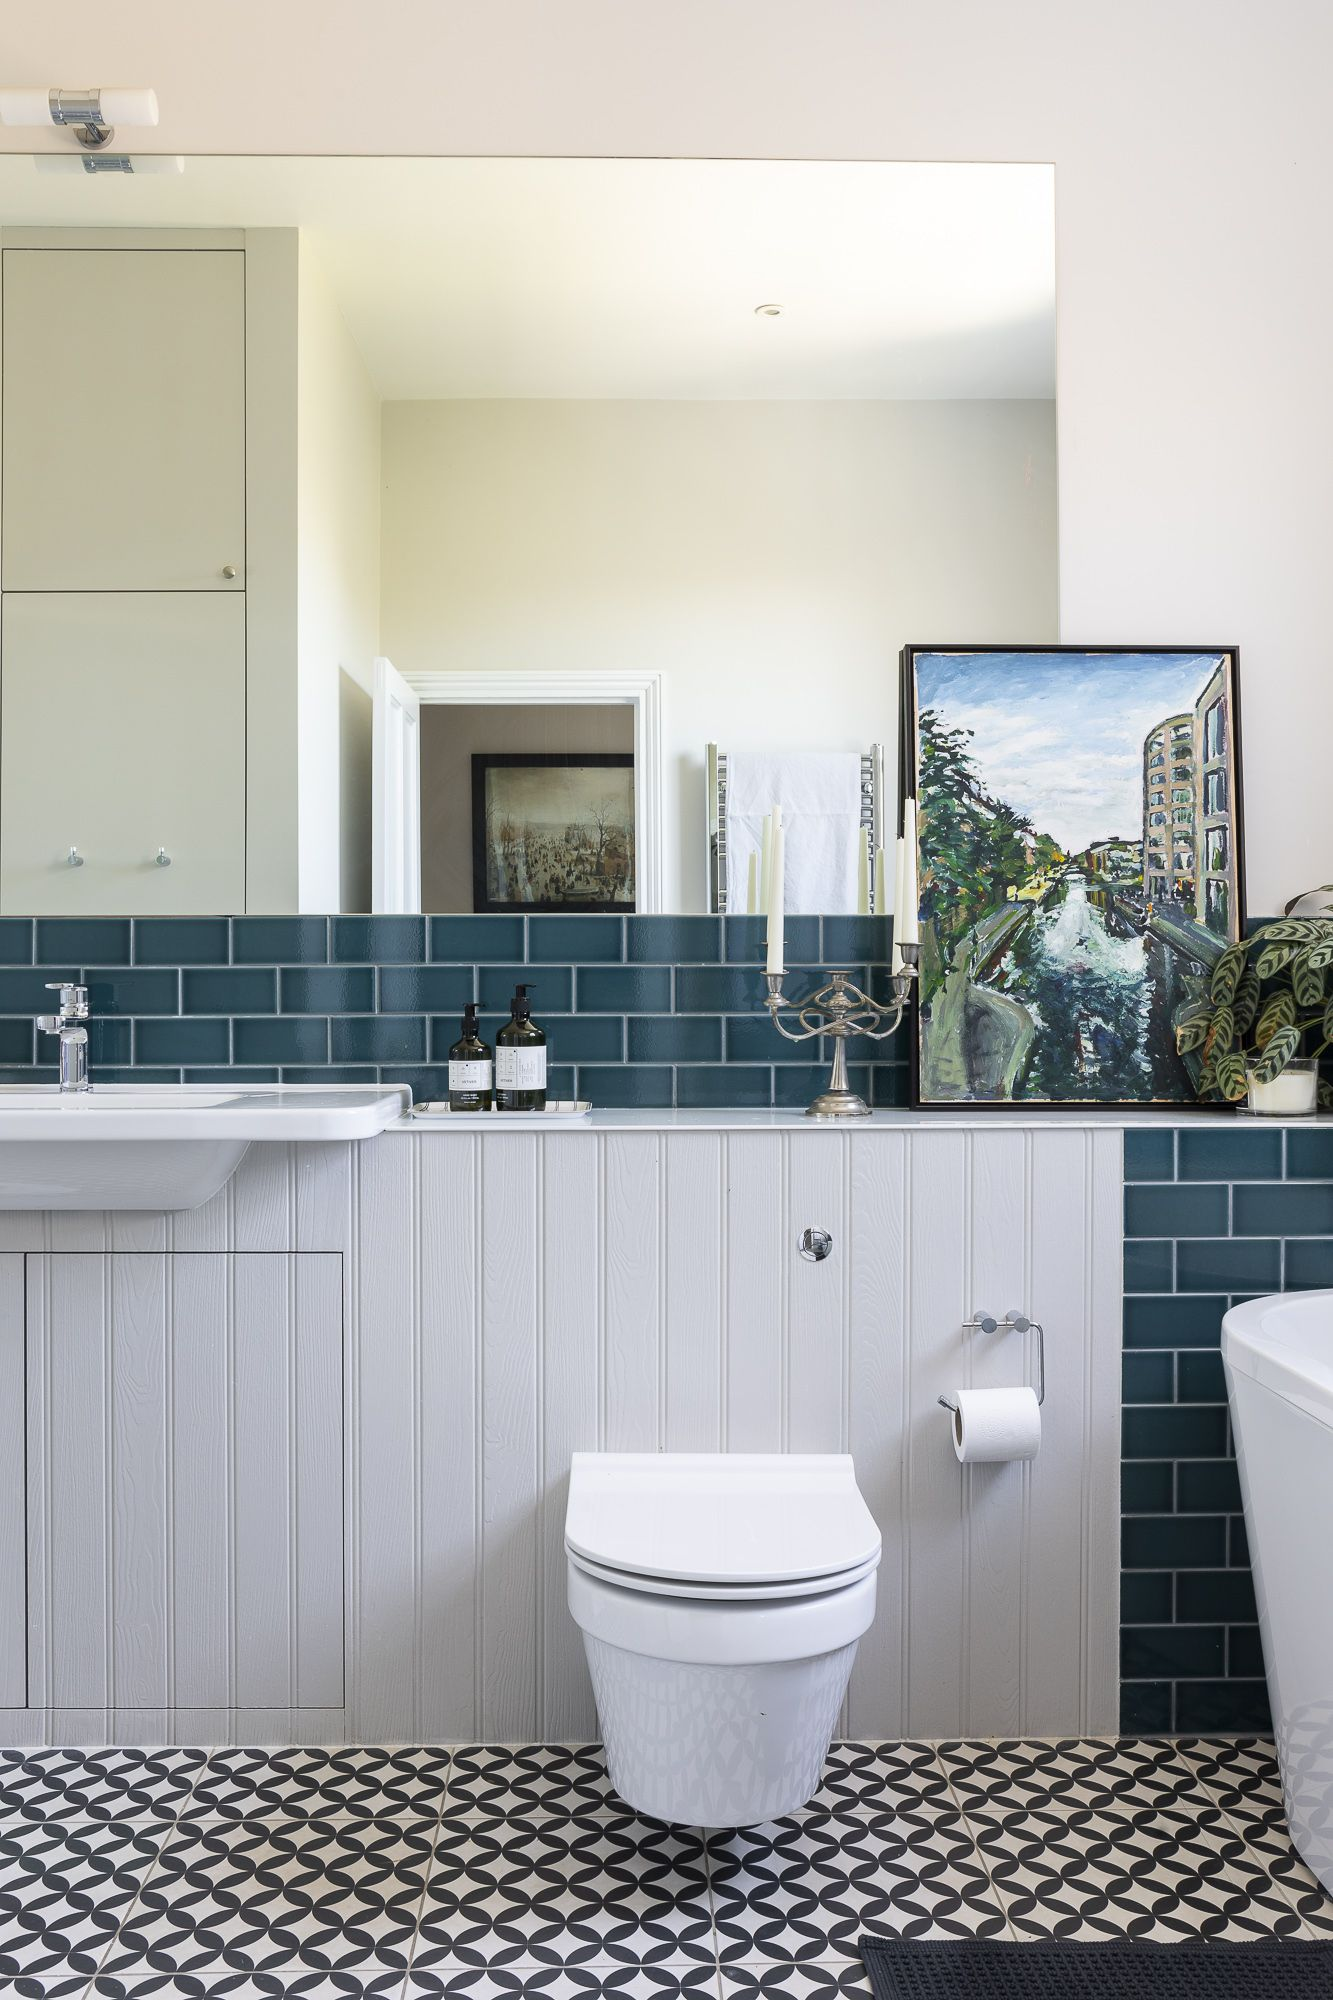 Patterned Floor Tiles Teal Ceramic Wall Tiles Tongue Groove Panelling Line The Contemporary Family Bathroom Of This Bathroom Design Family Bathroom Design